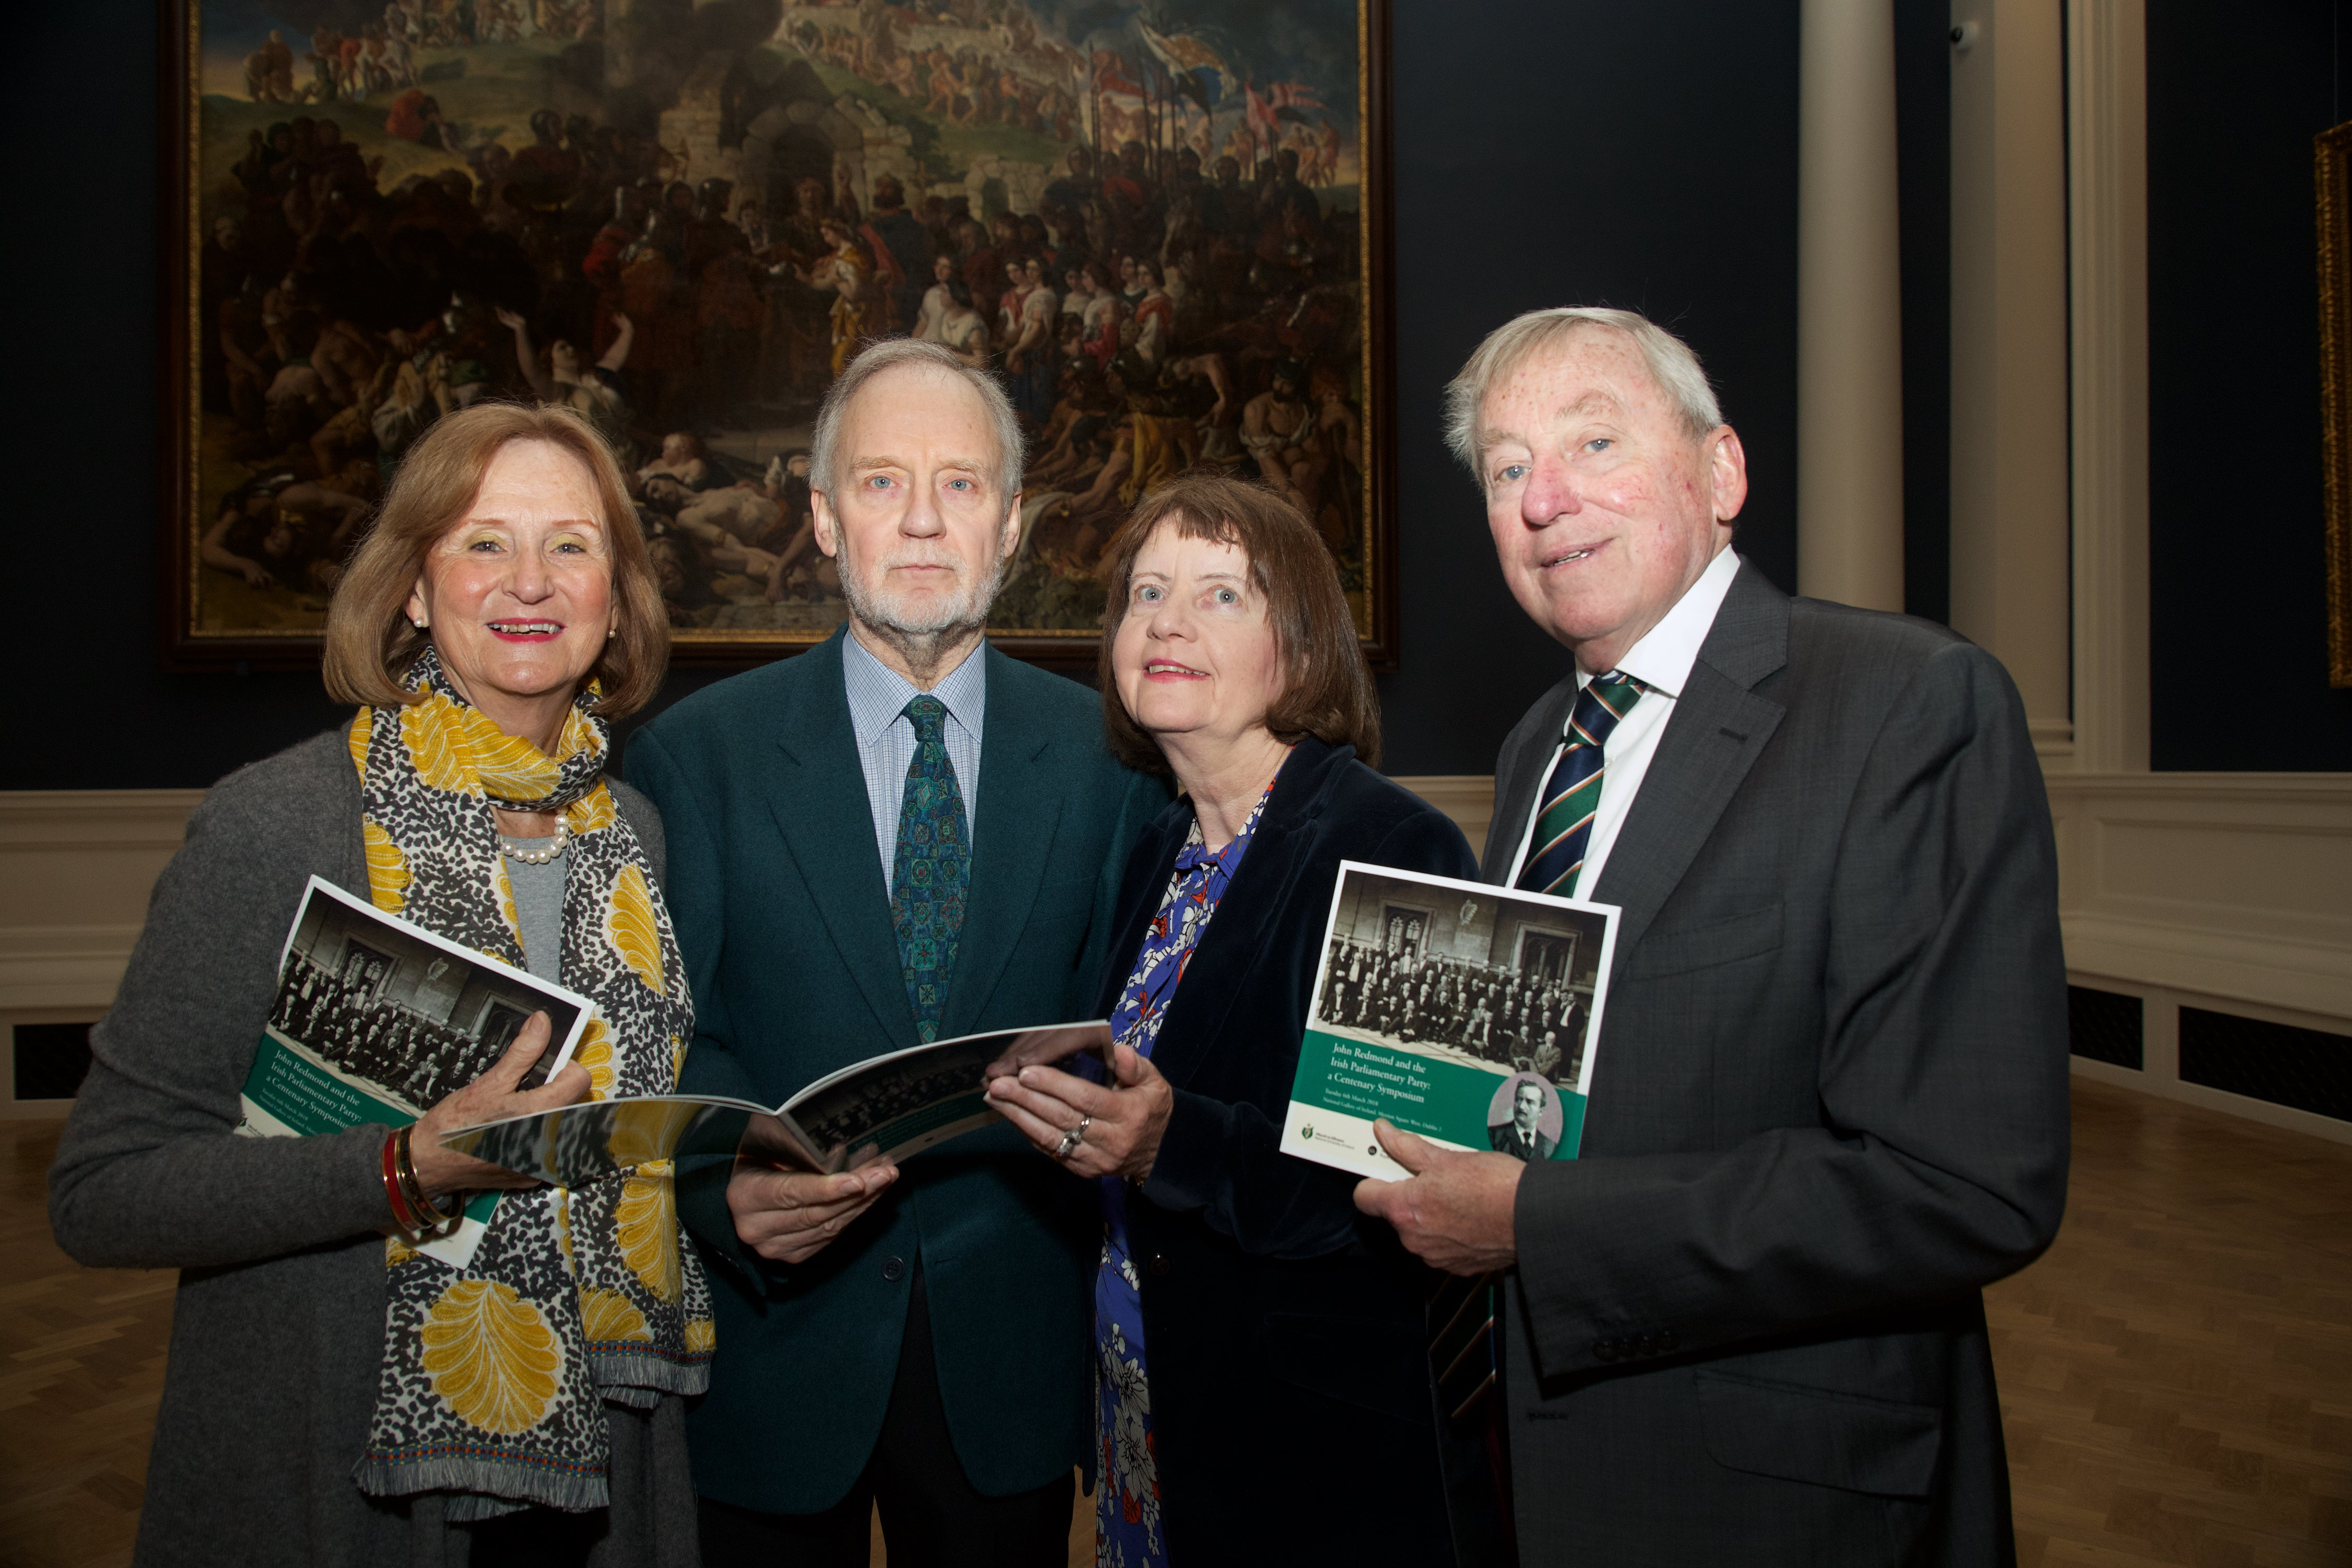 Barbara Lockyer, John Green and Mary Green, great-granchildren of John Redmond, pictured with Dr Maurice Manning, Chancellor of NUI.